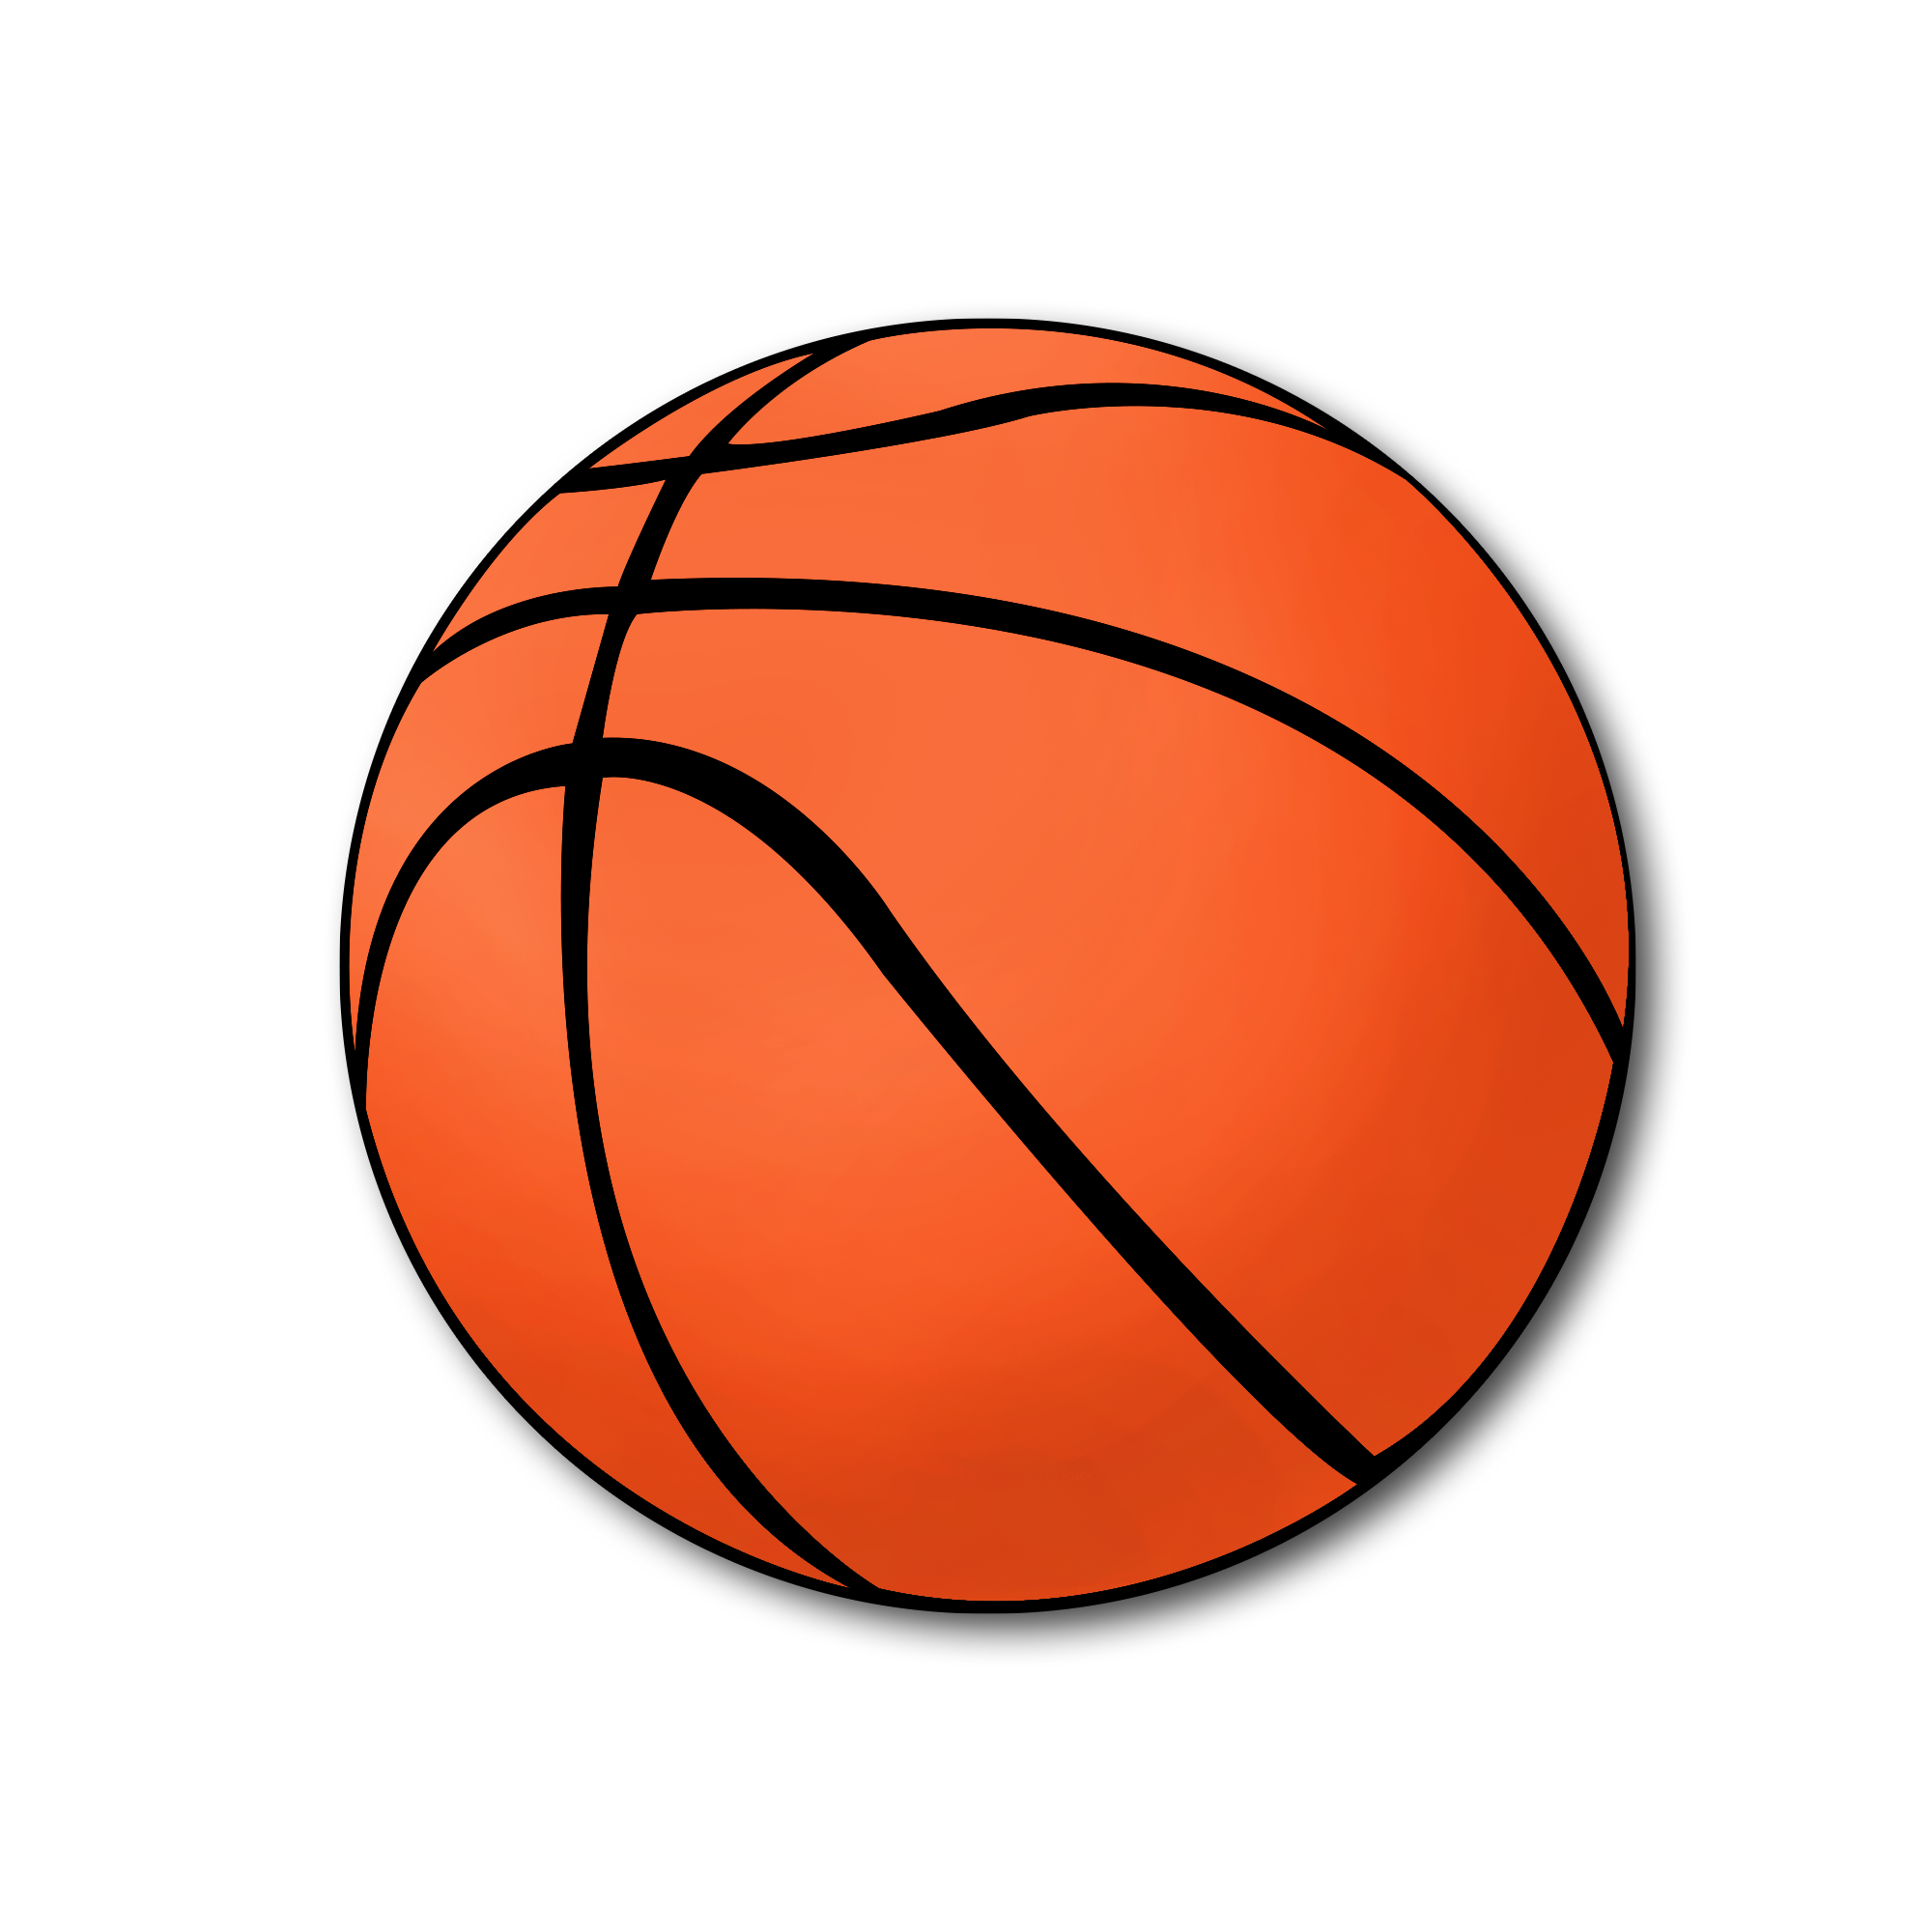 Downloadable basketball clipart vector black and white download Picturae Database vector black and white download